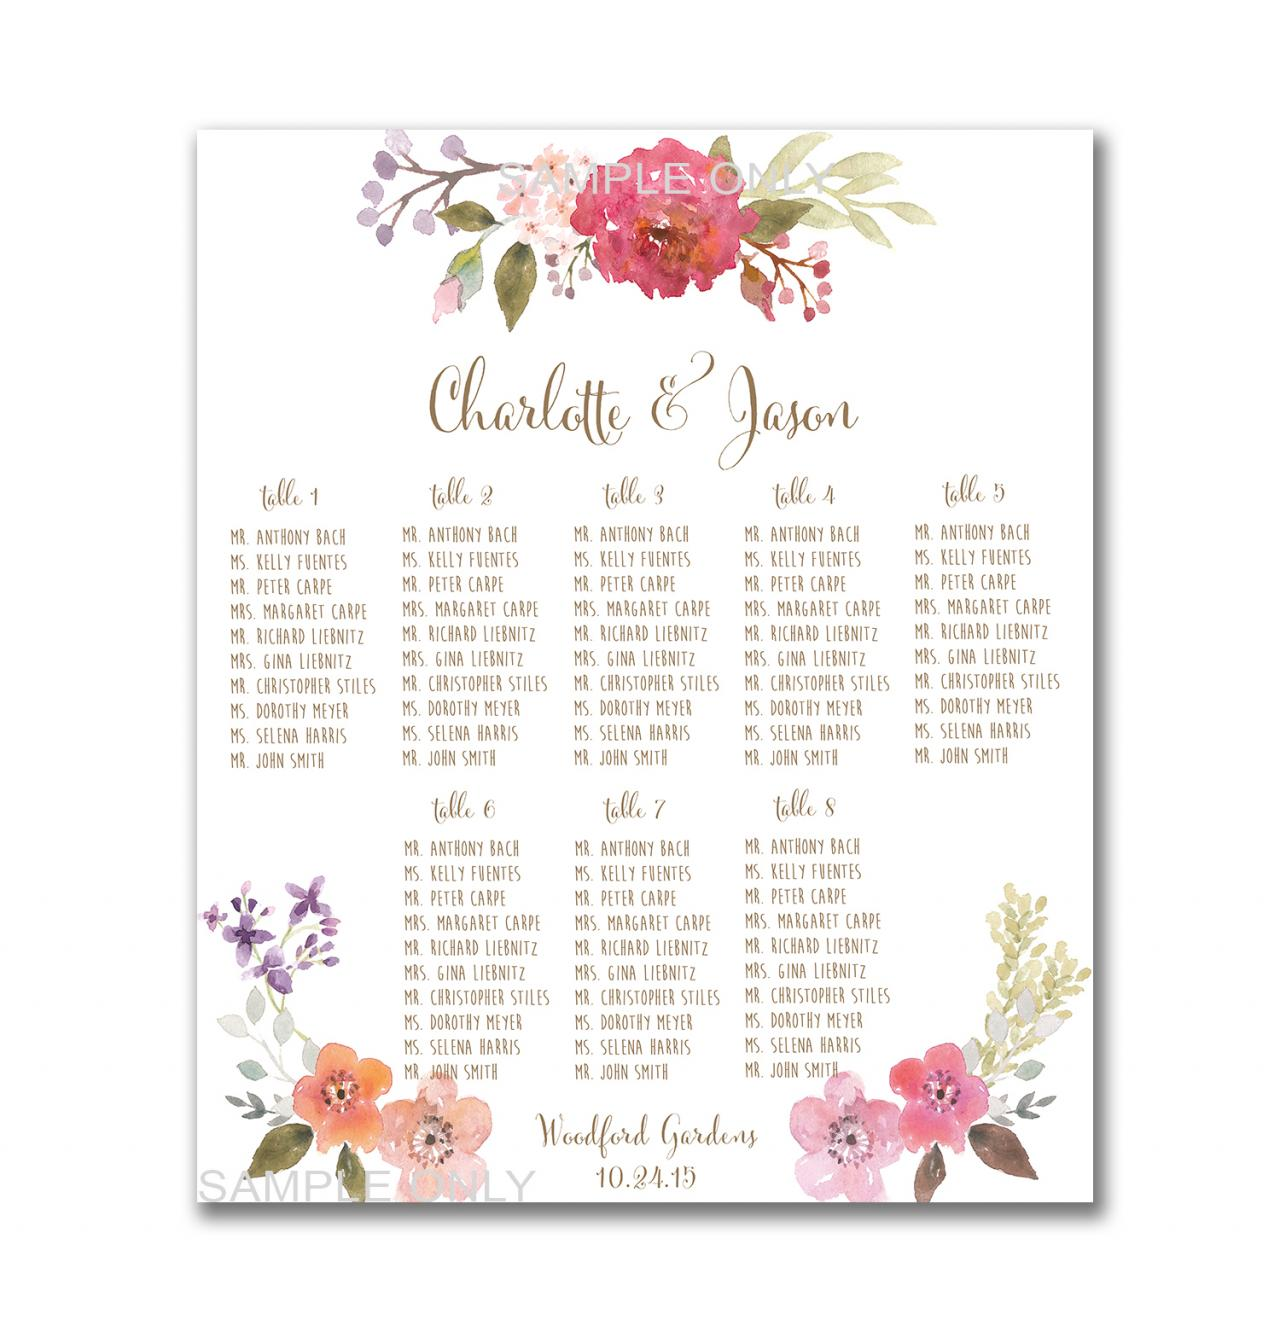 Wedding Table Seating Chart Printable 50 130 Guests Customized Plan